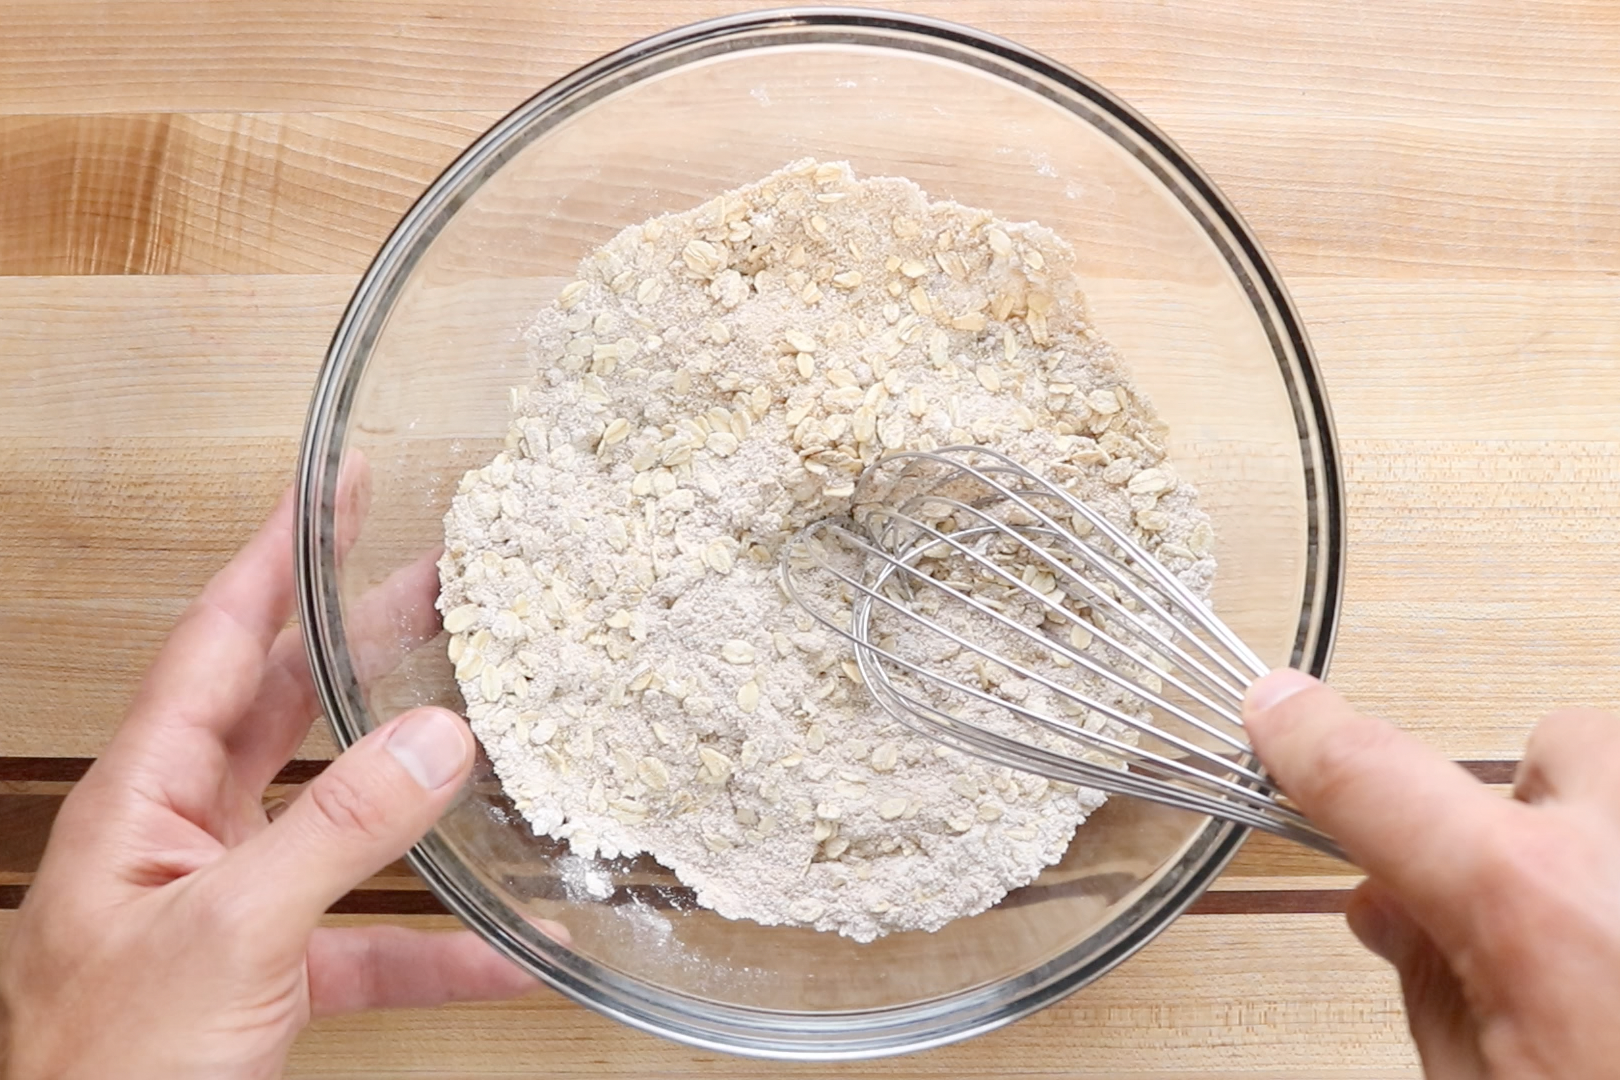 3. In another bowl, whisk together the flour, oats, brown sugar, cinnamon, salt, baking powder, and baking soda. -